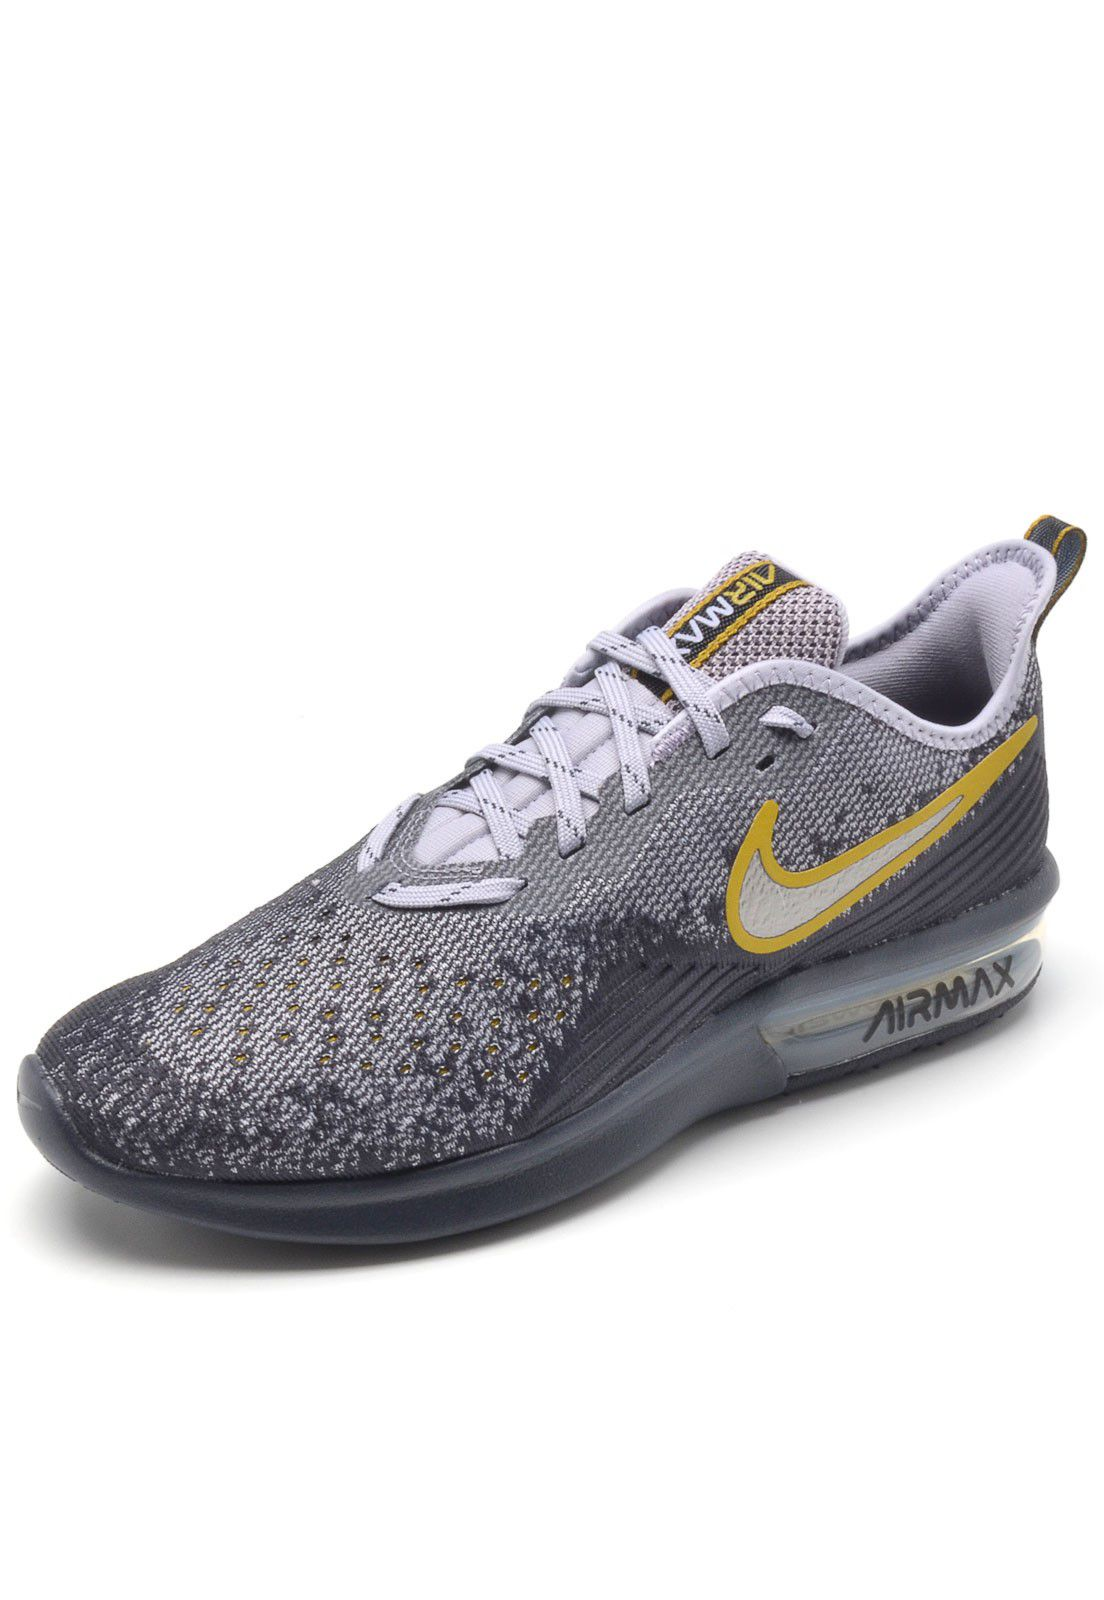 92994df2e3 Tênis Nike Air Max Sequent 4 Masculino